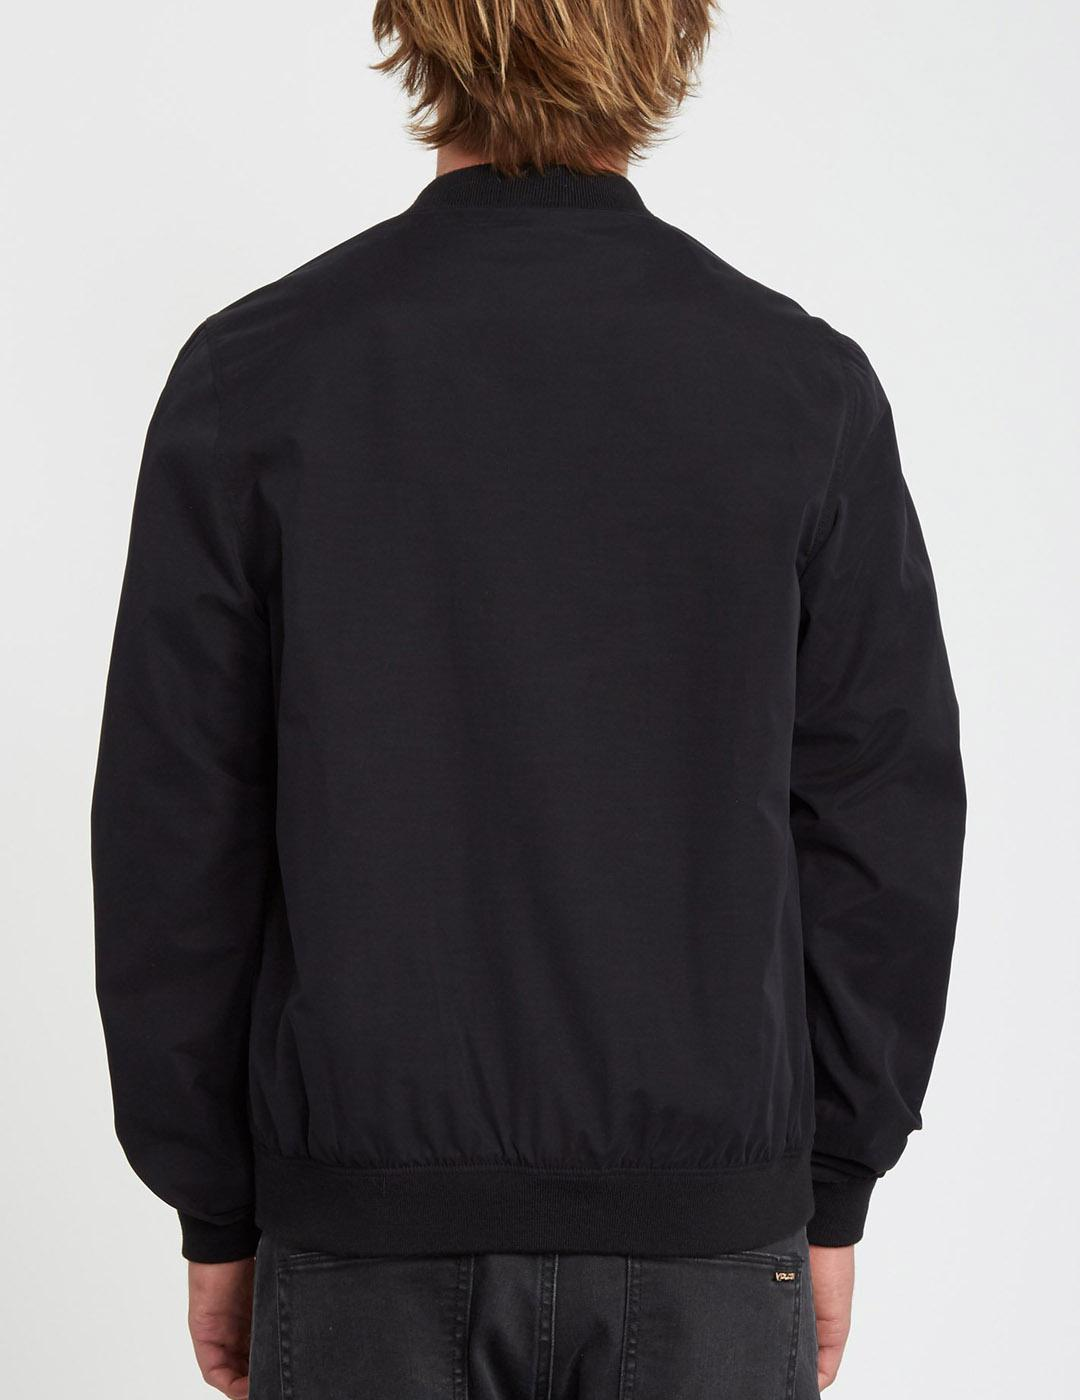 CAZADORA VOLCOM BURNWARD JACKET BLK BLACK